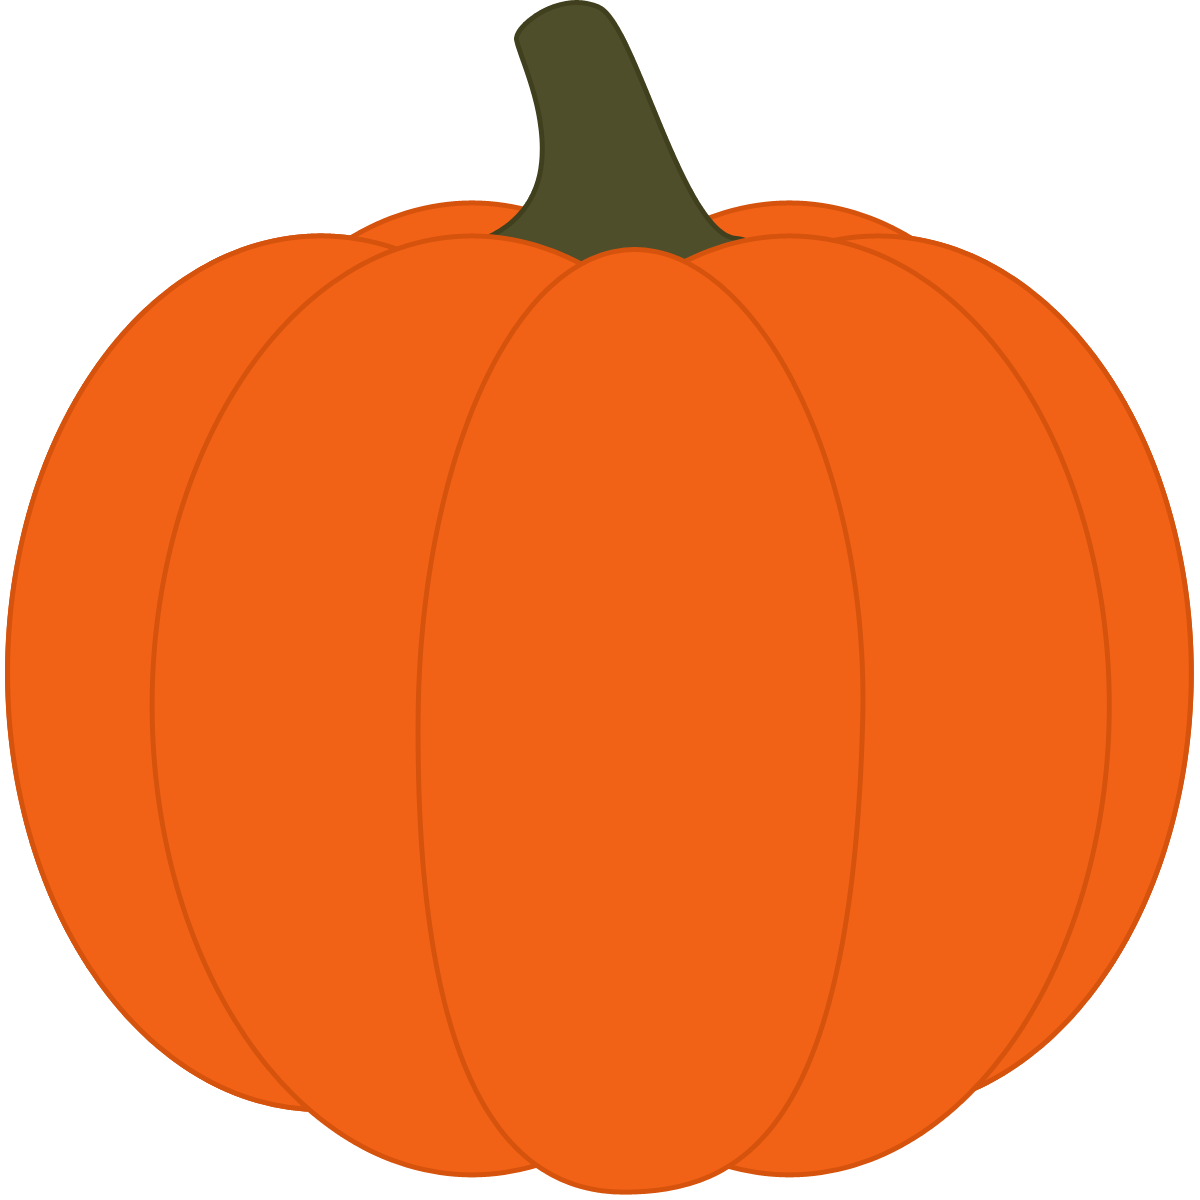 Inside a pumpkin clipart picture download Pumpkin Clip Art | cyberuse picture download